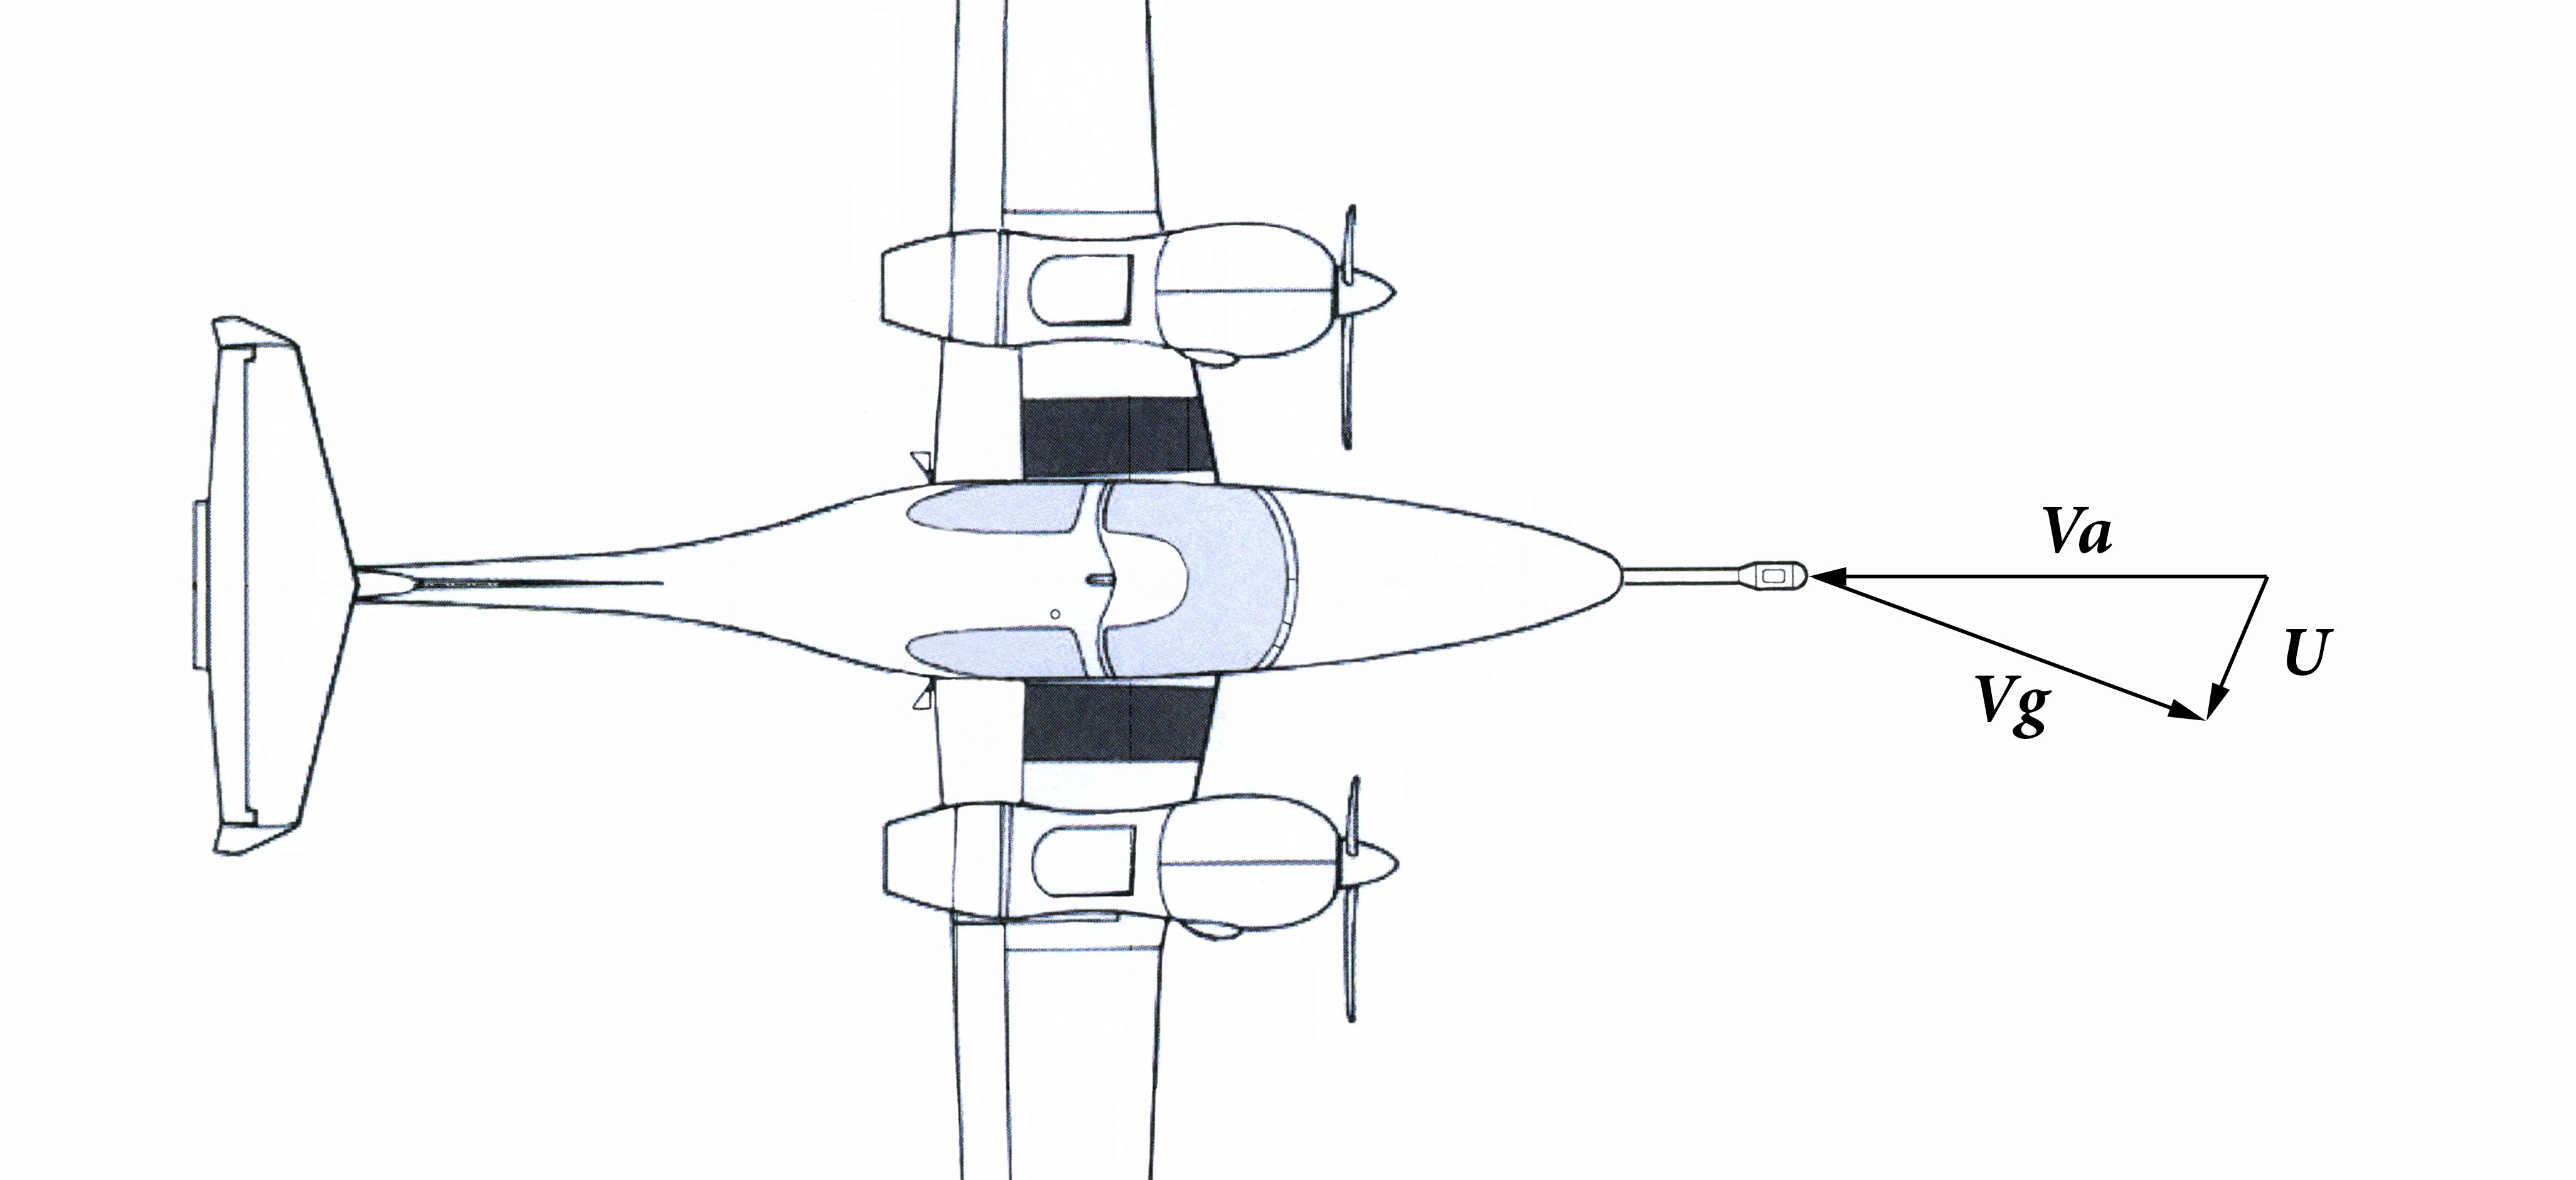 Graphic of aircraft with BAT probe